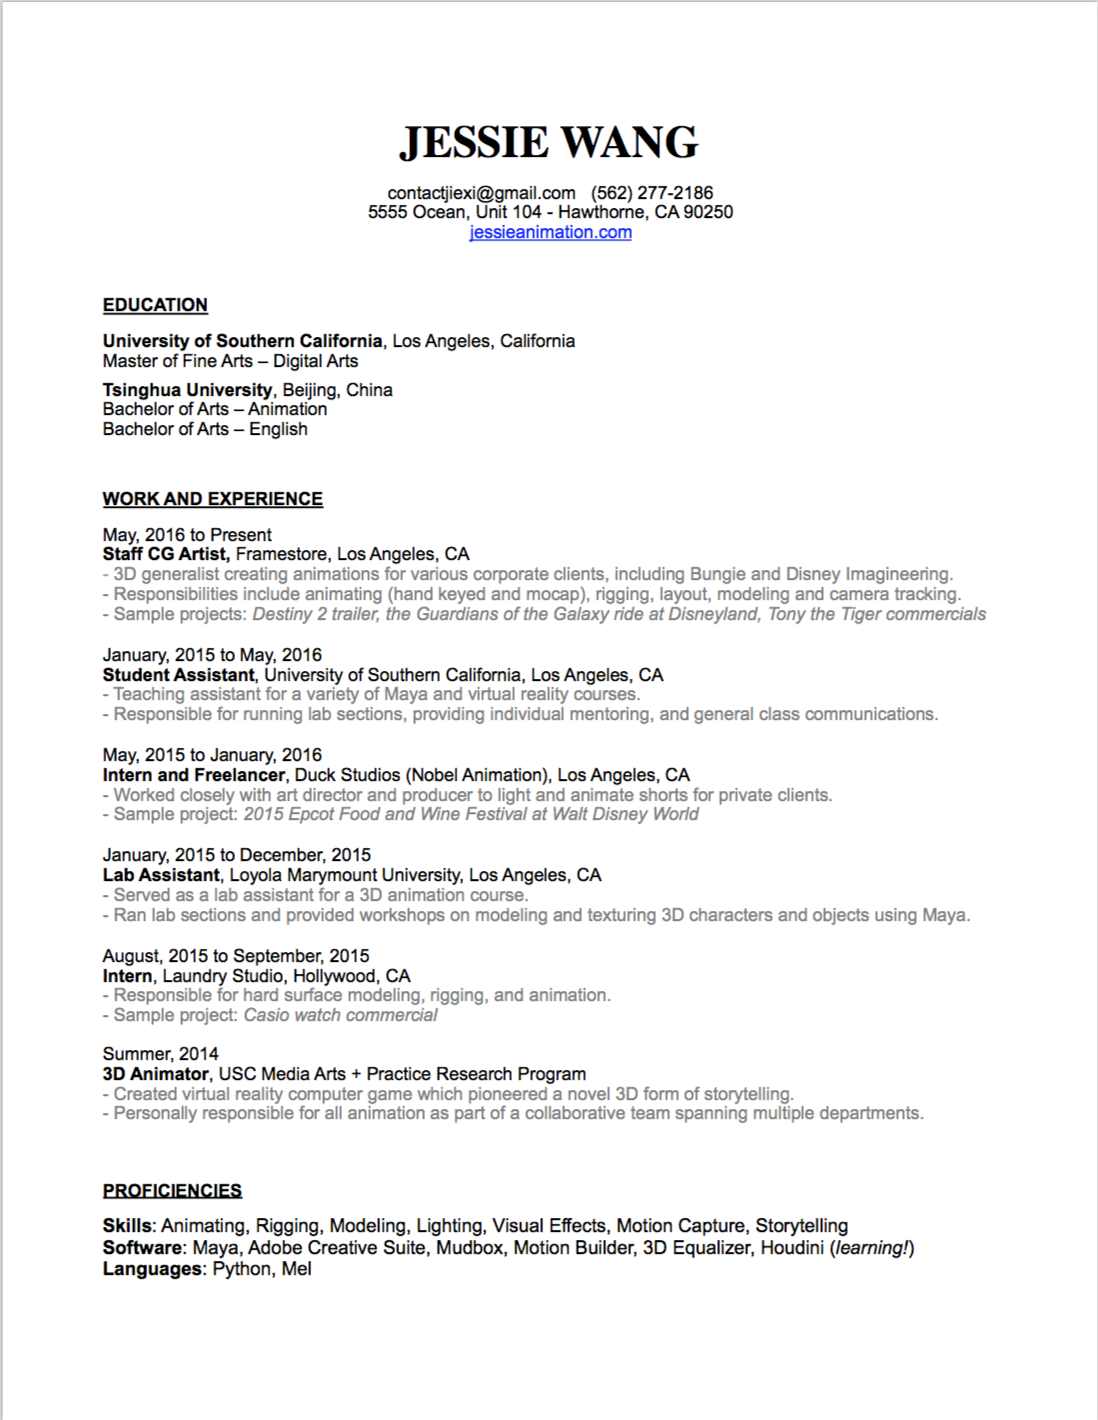 Resume - Jessie Wang